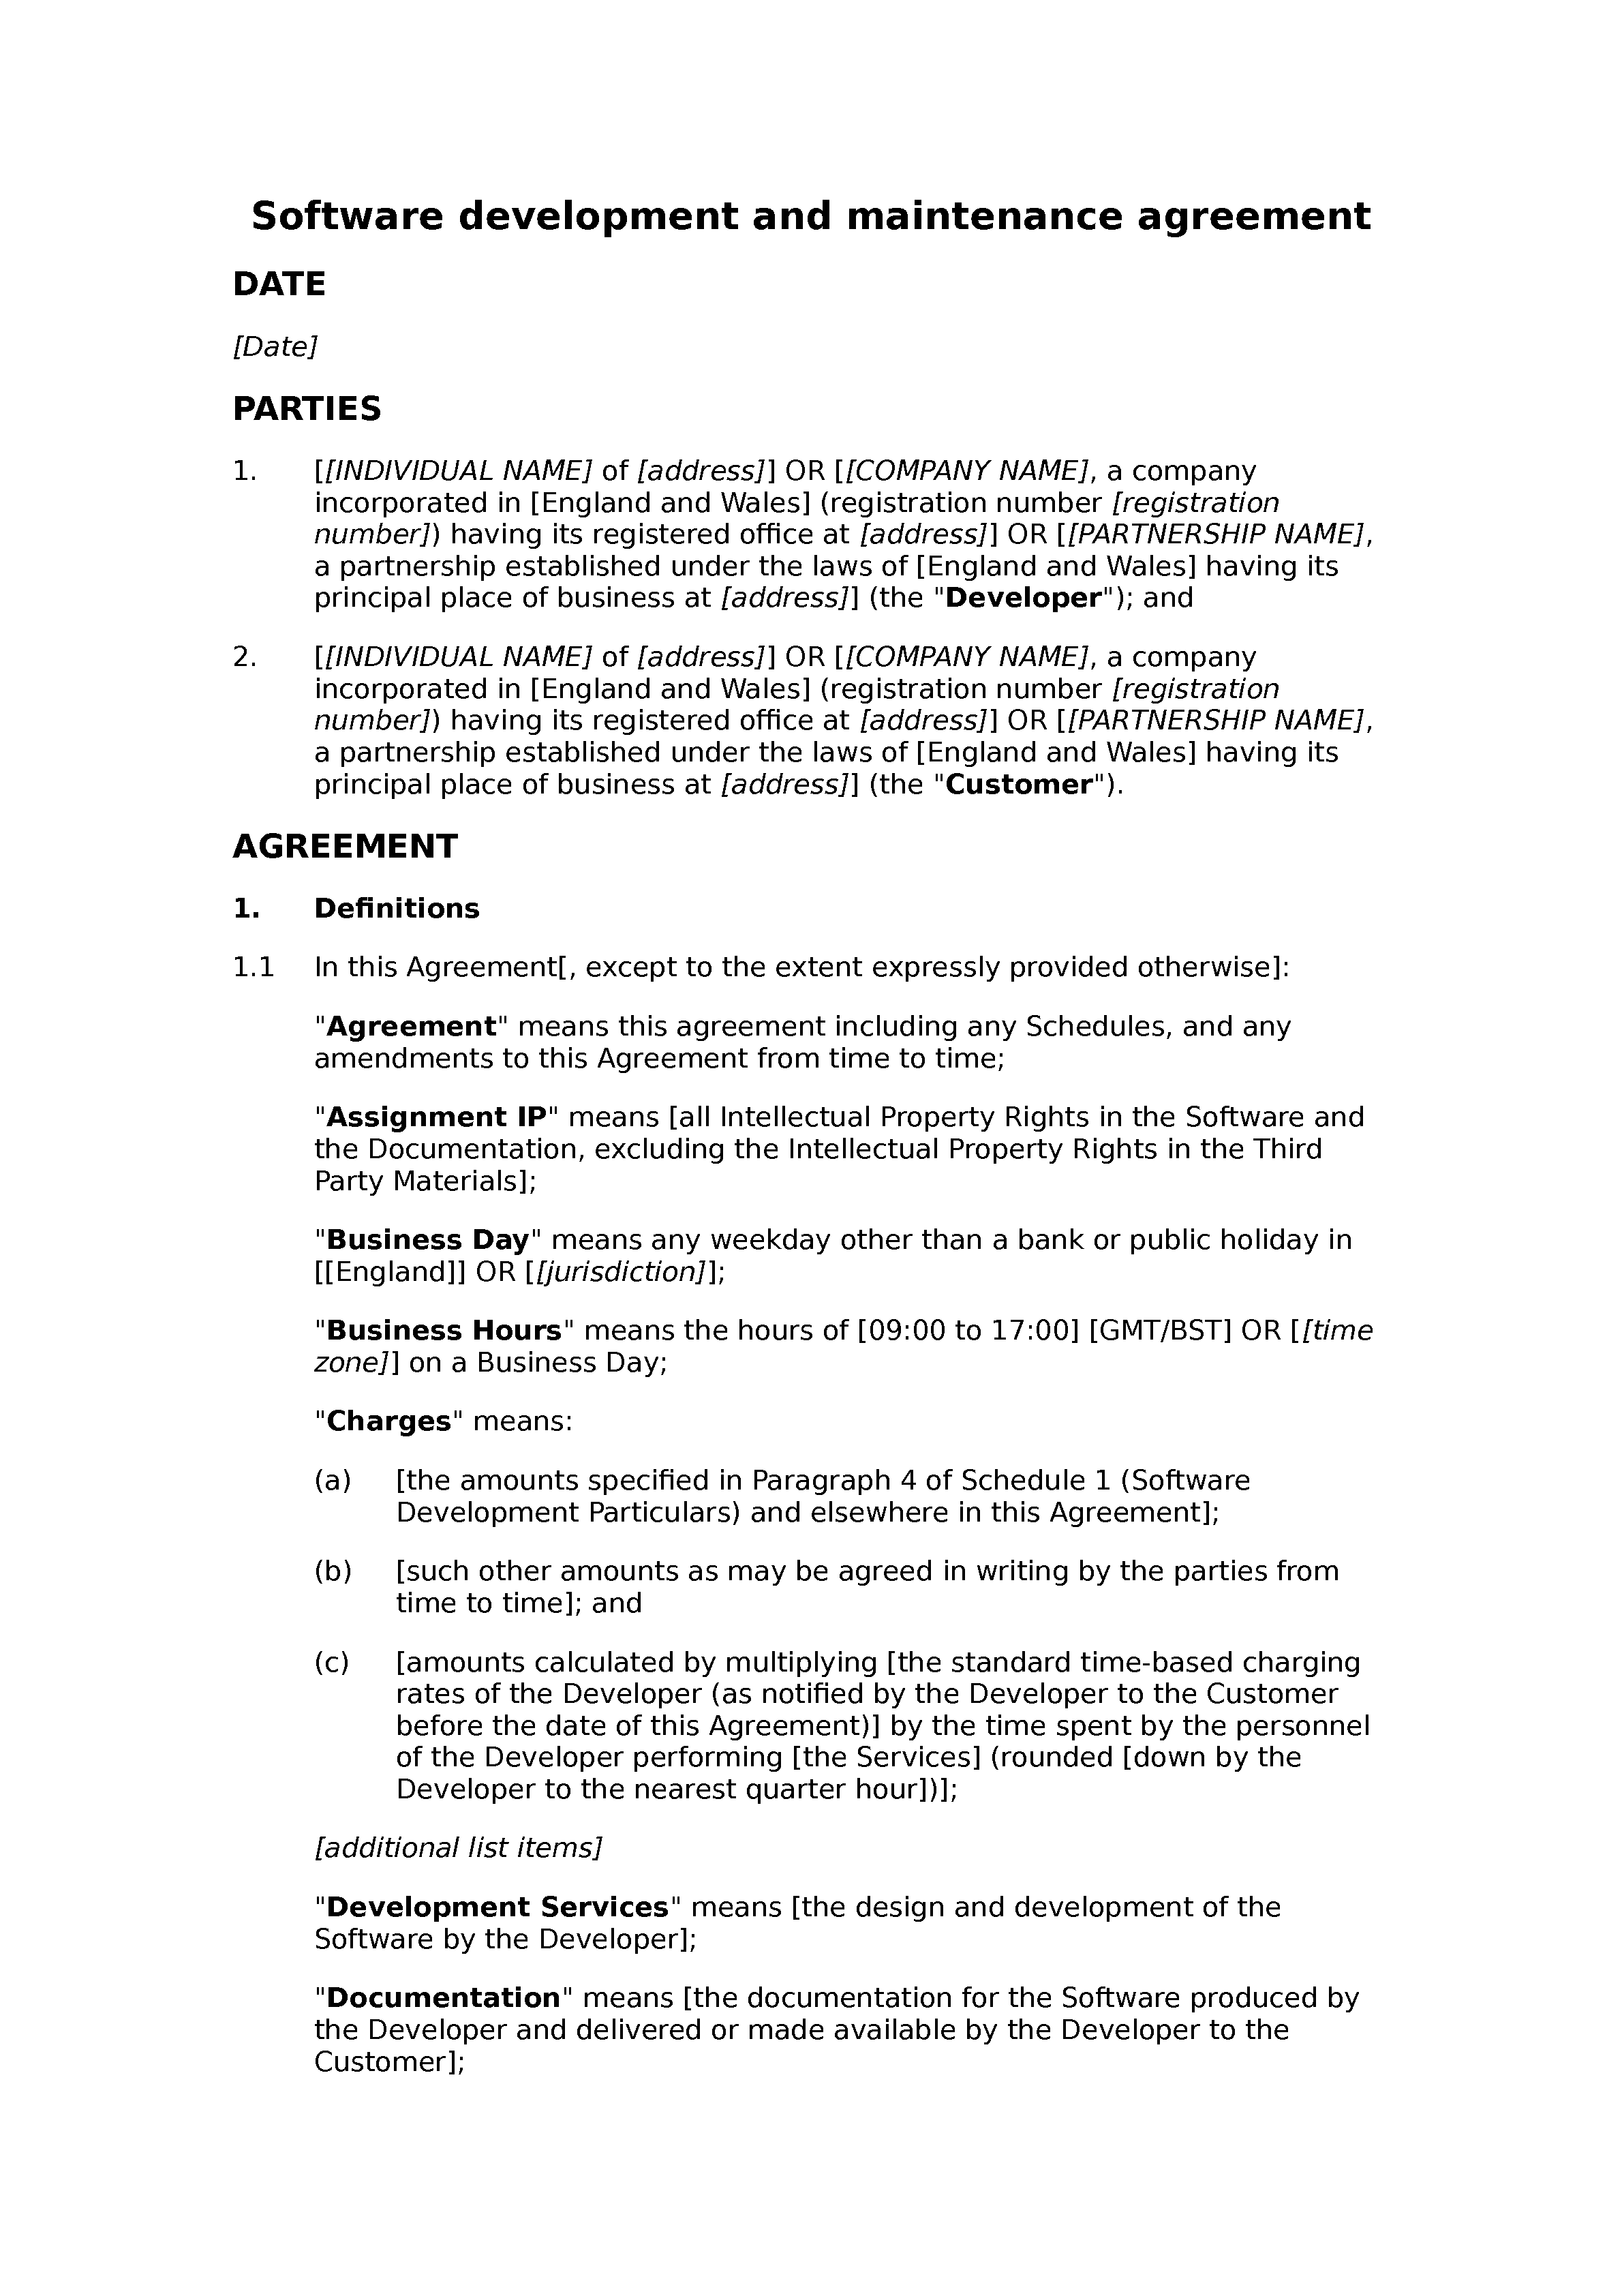 Software development and maintenance agreement (basic) document preview